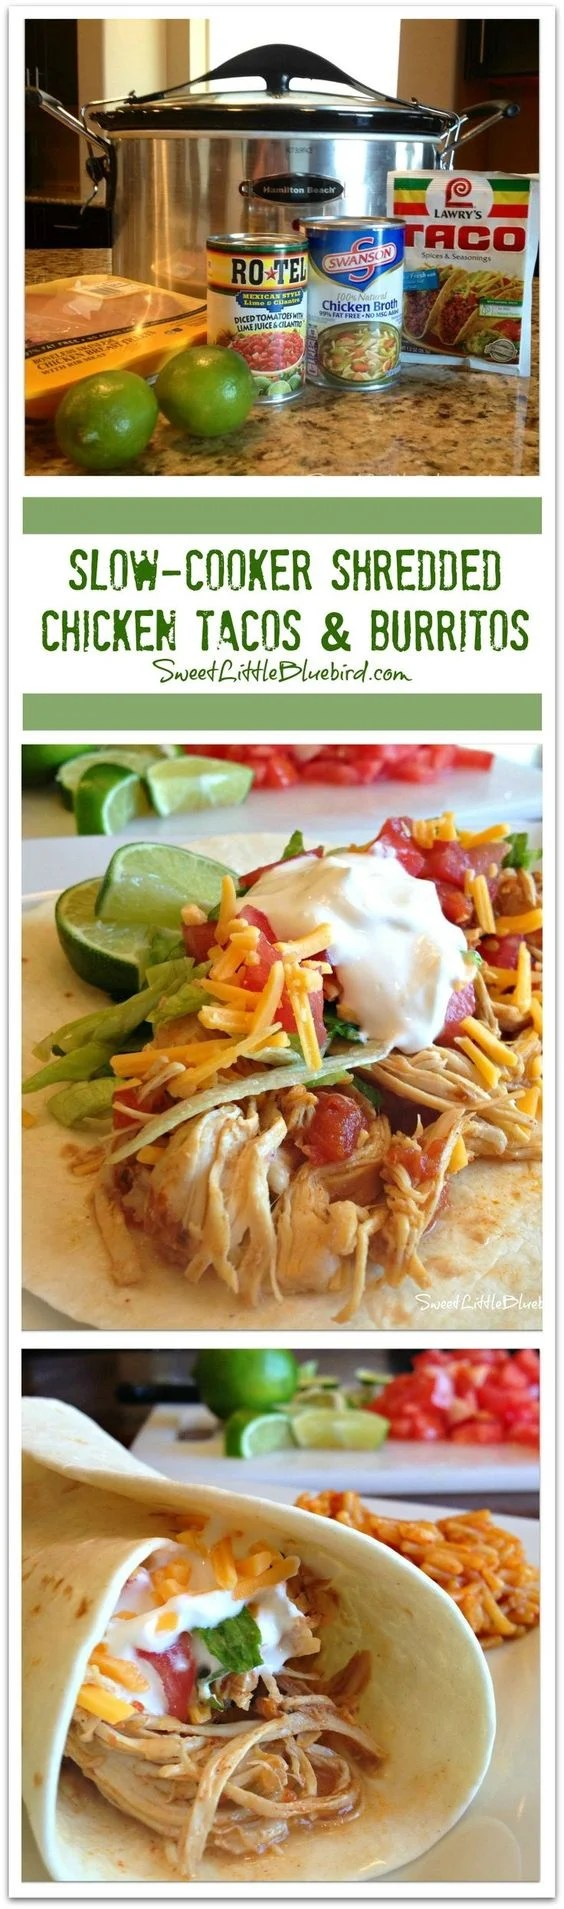 Best Slow Cooker Recipes - Shredded Chicken Tacos and Burritos